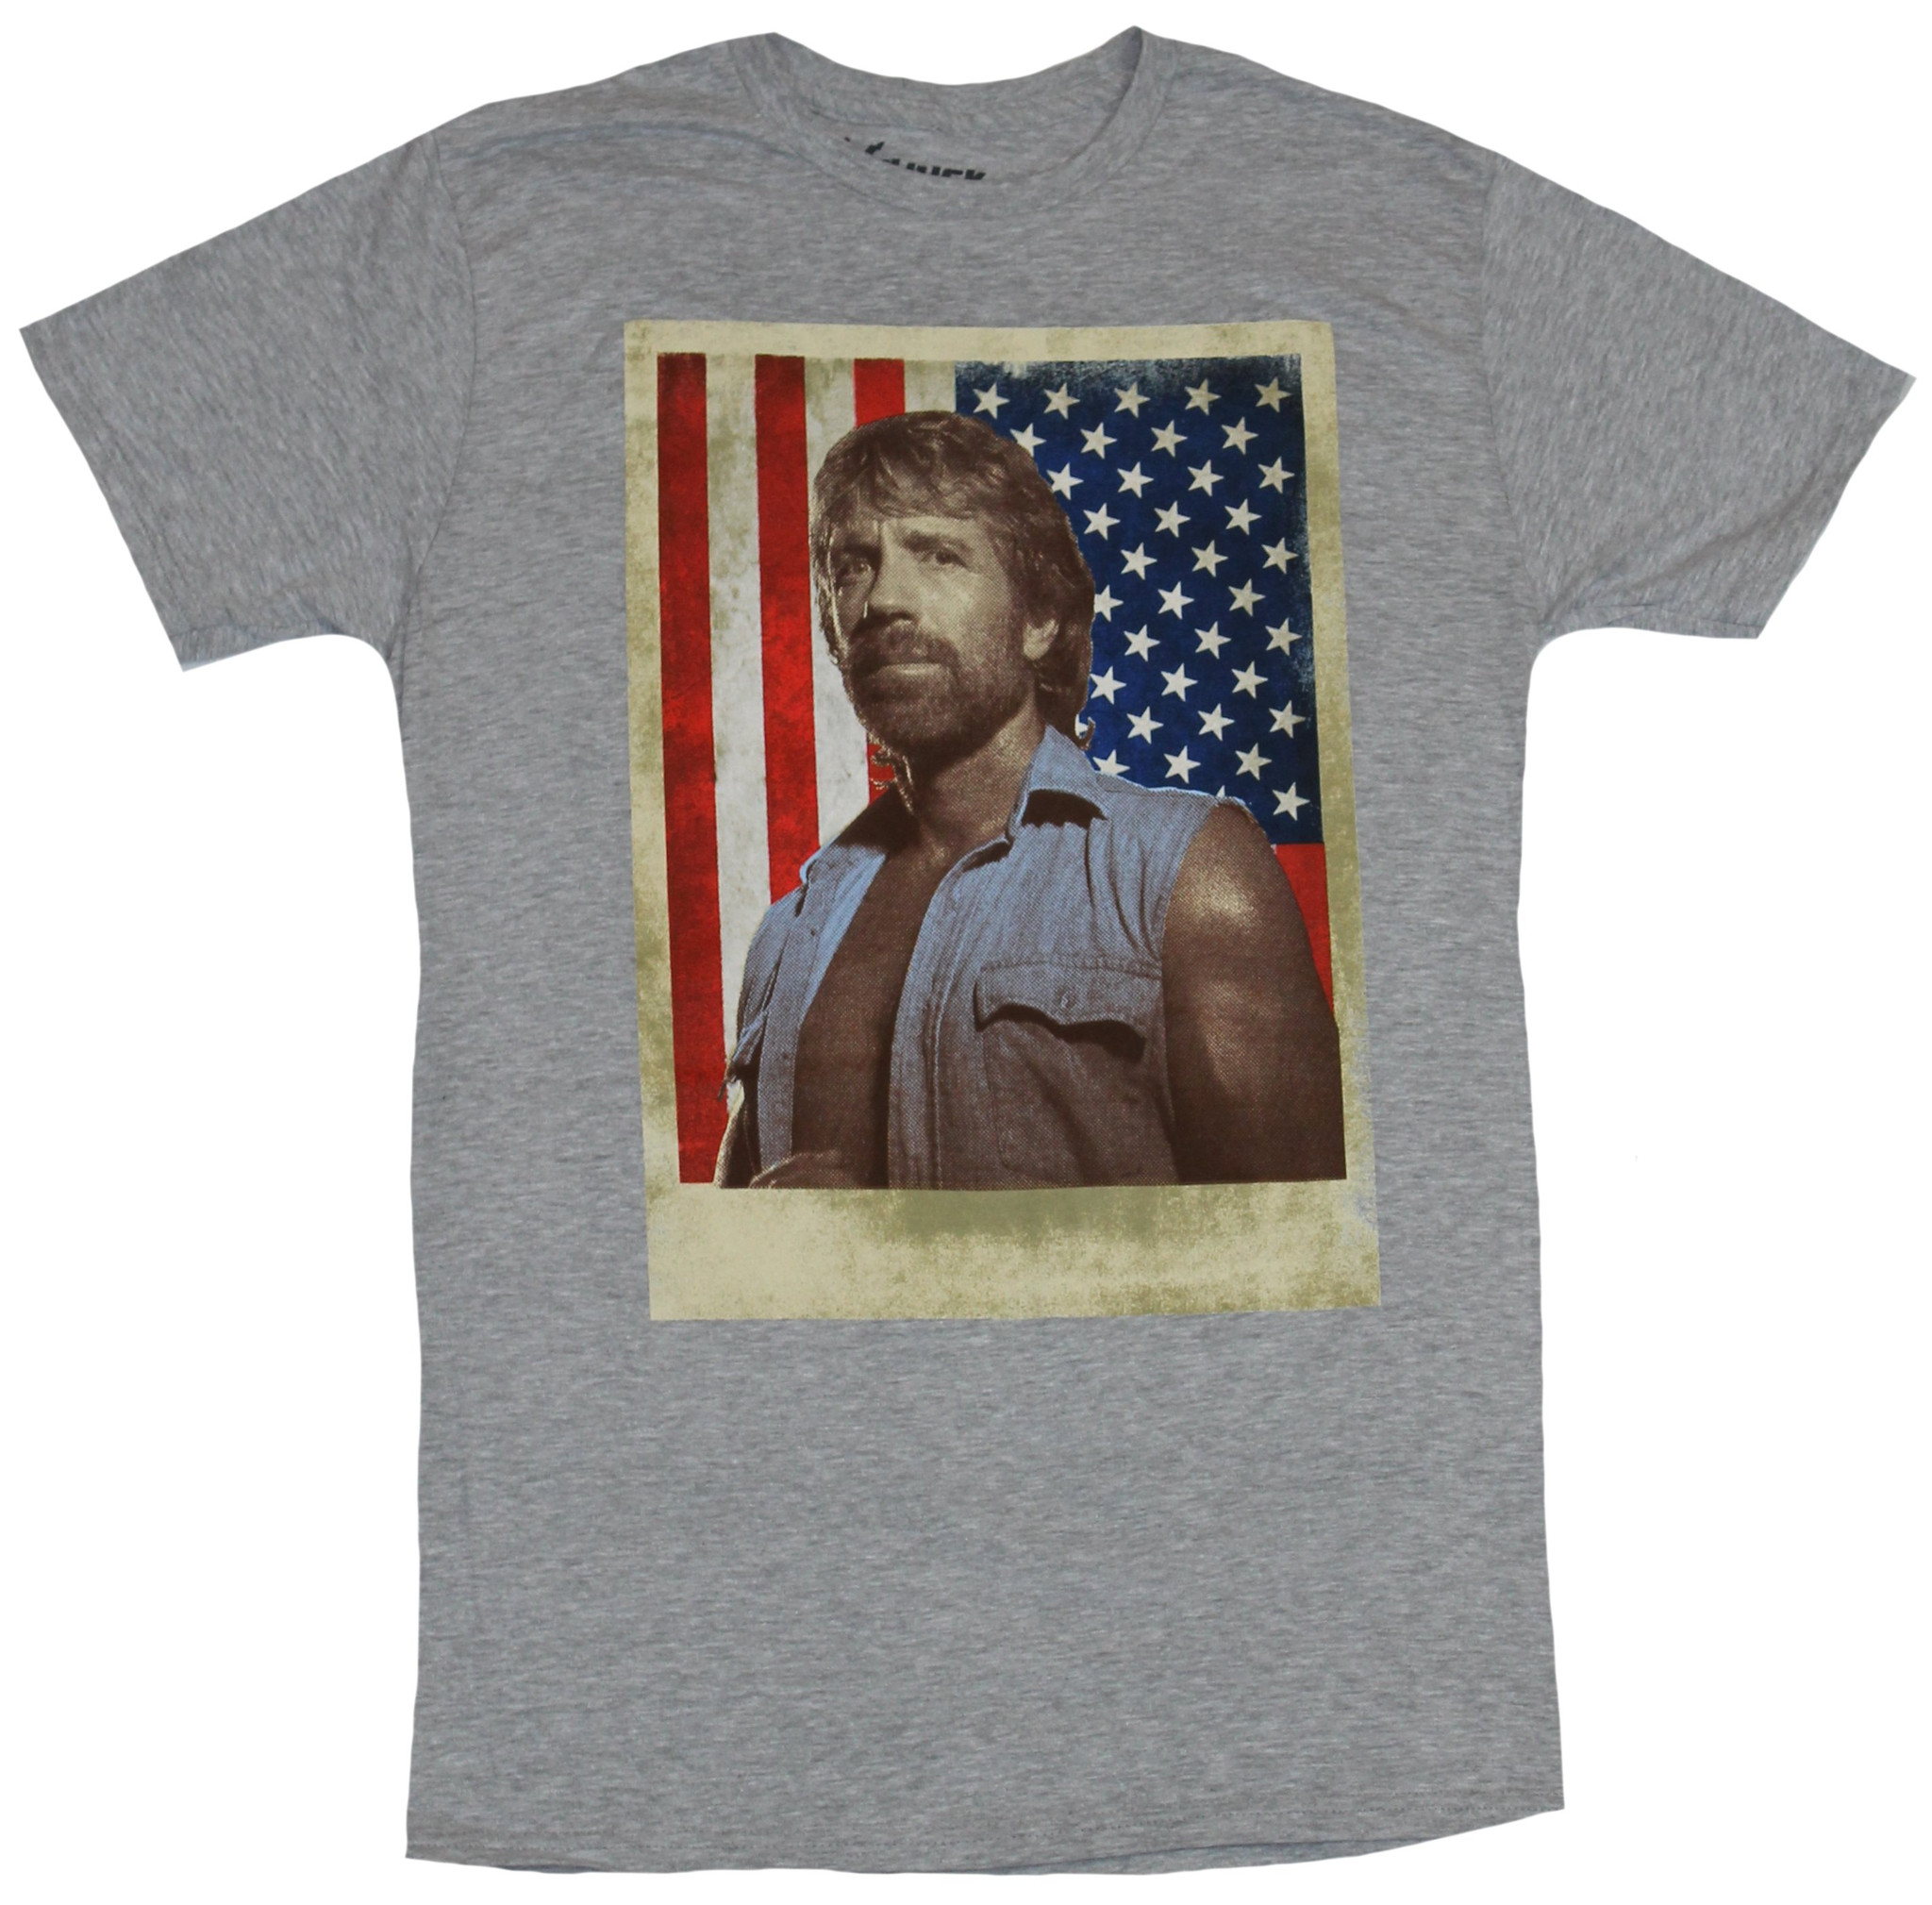 7509f6d8a82ac3 IN MY PARENTS BASEMENT - Chuck Norris Mens T-Shirt - Sleeveless Chuck Over  American Flag Image - Walmart.com